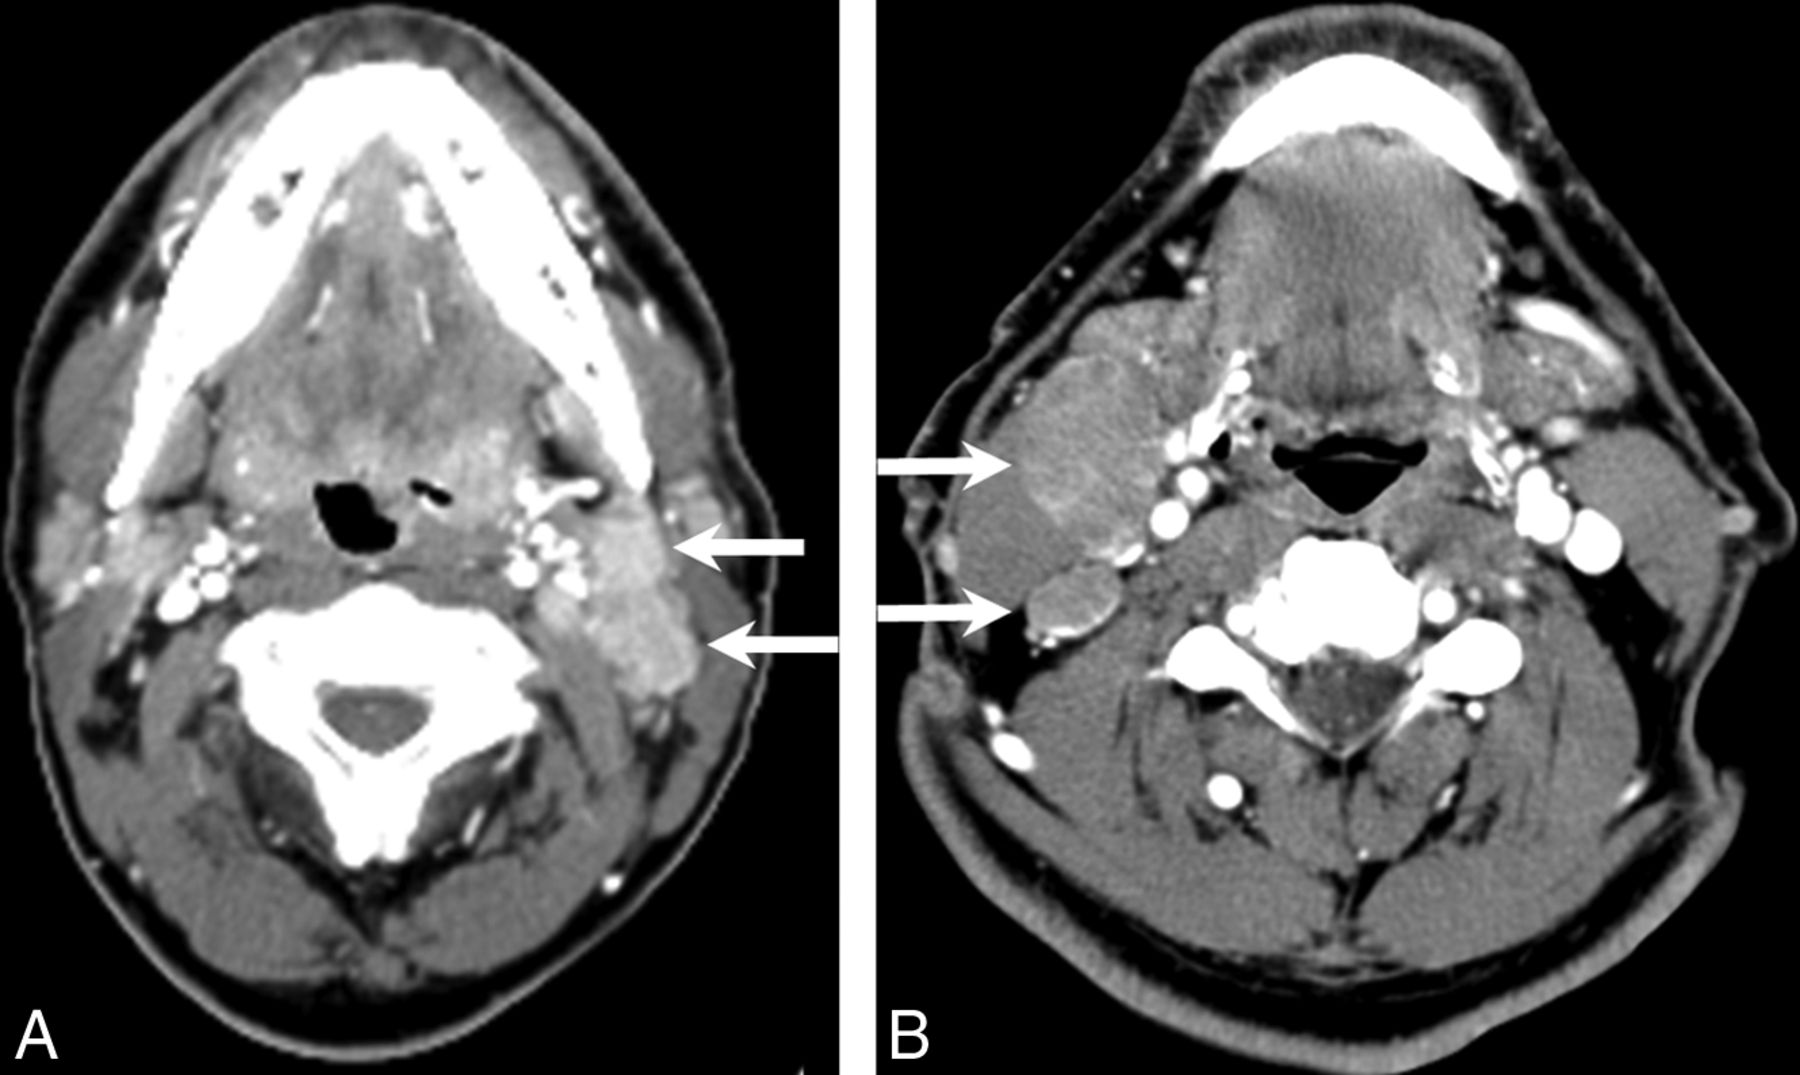 Solid Lymph Nodes as an Imaging Biomarker for Risk